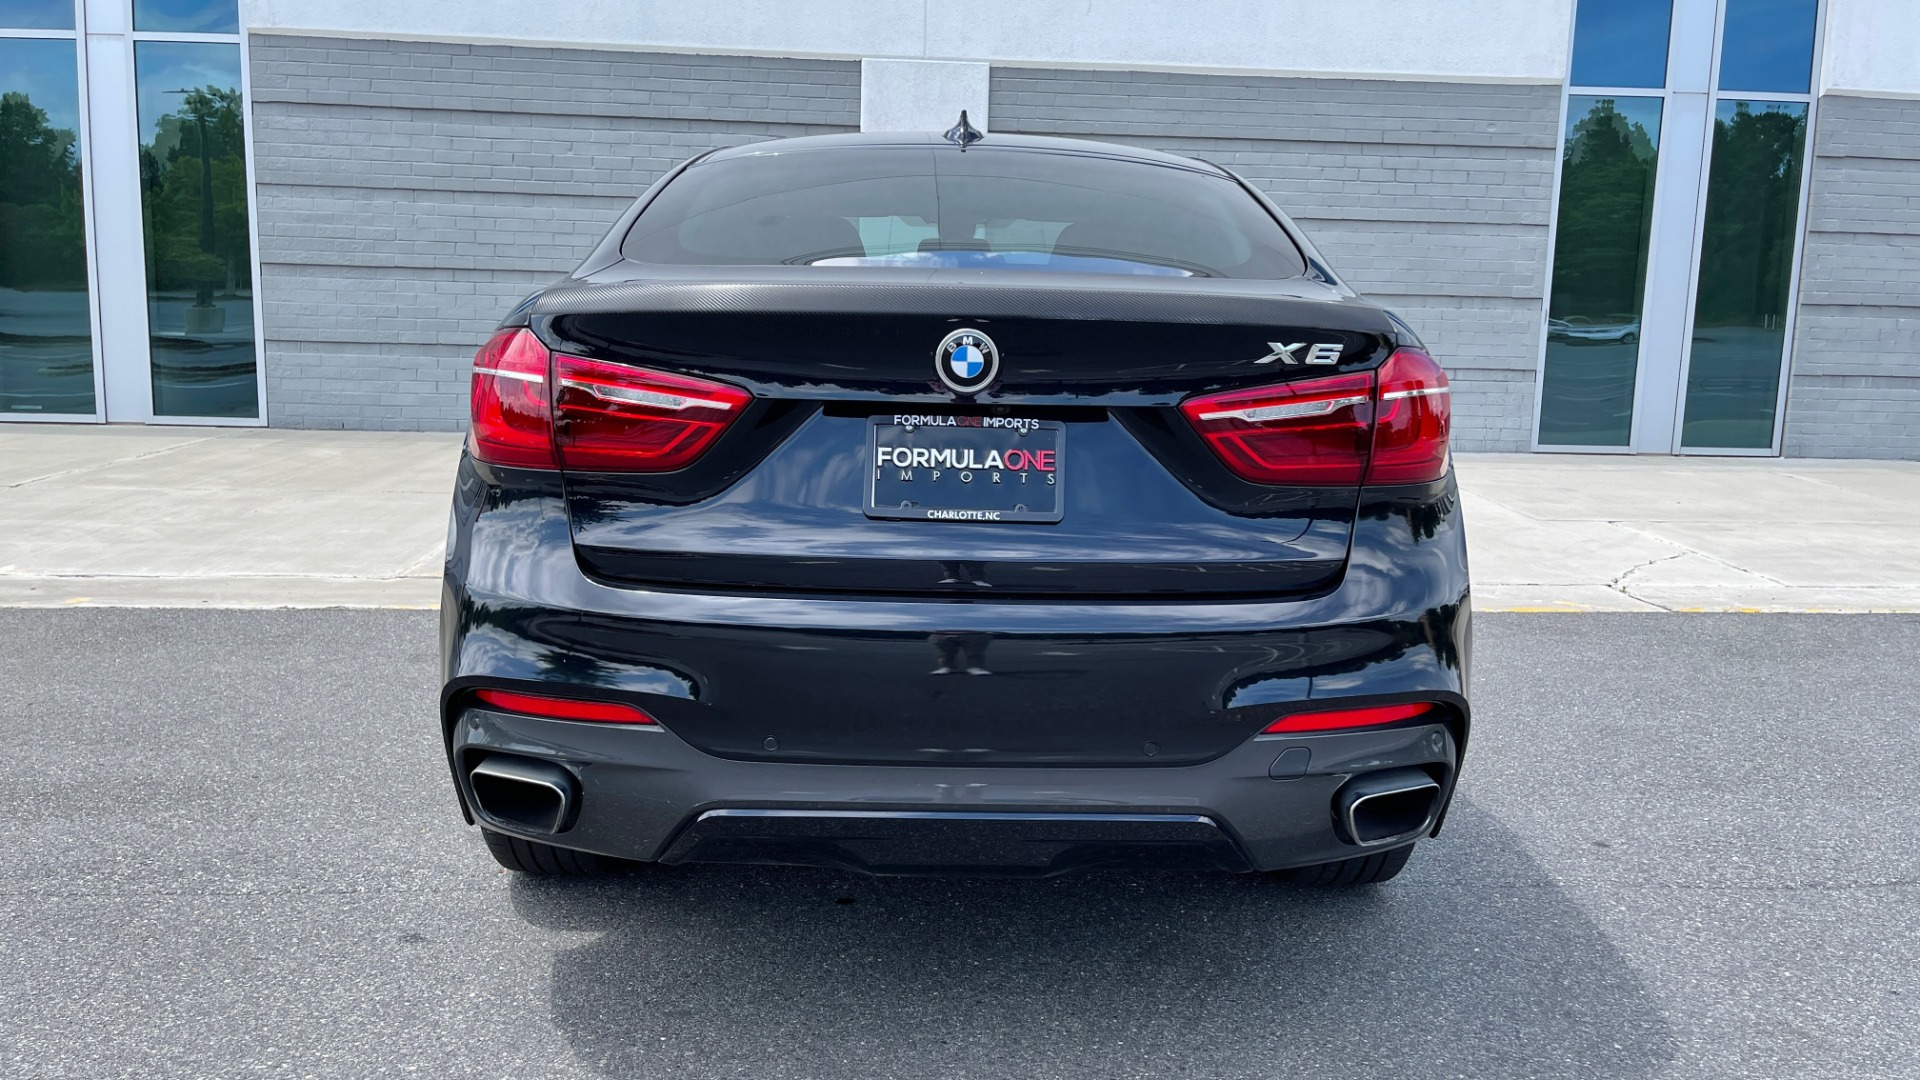 Used 2018 BMW X6 XDRIVE35I M-SPORT / DRVR ASST / PRK ASST / H/K SND / APPLE / WIRELESS CHARG for sale $51,995 at Formula Imports in Charlotte NC 28227 24